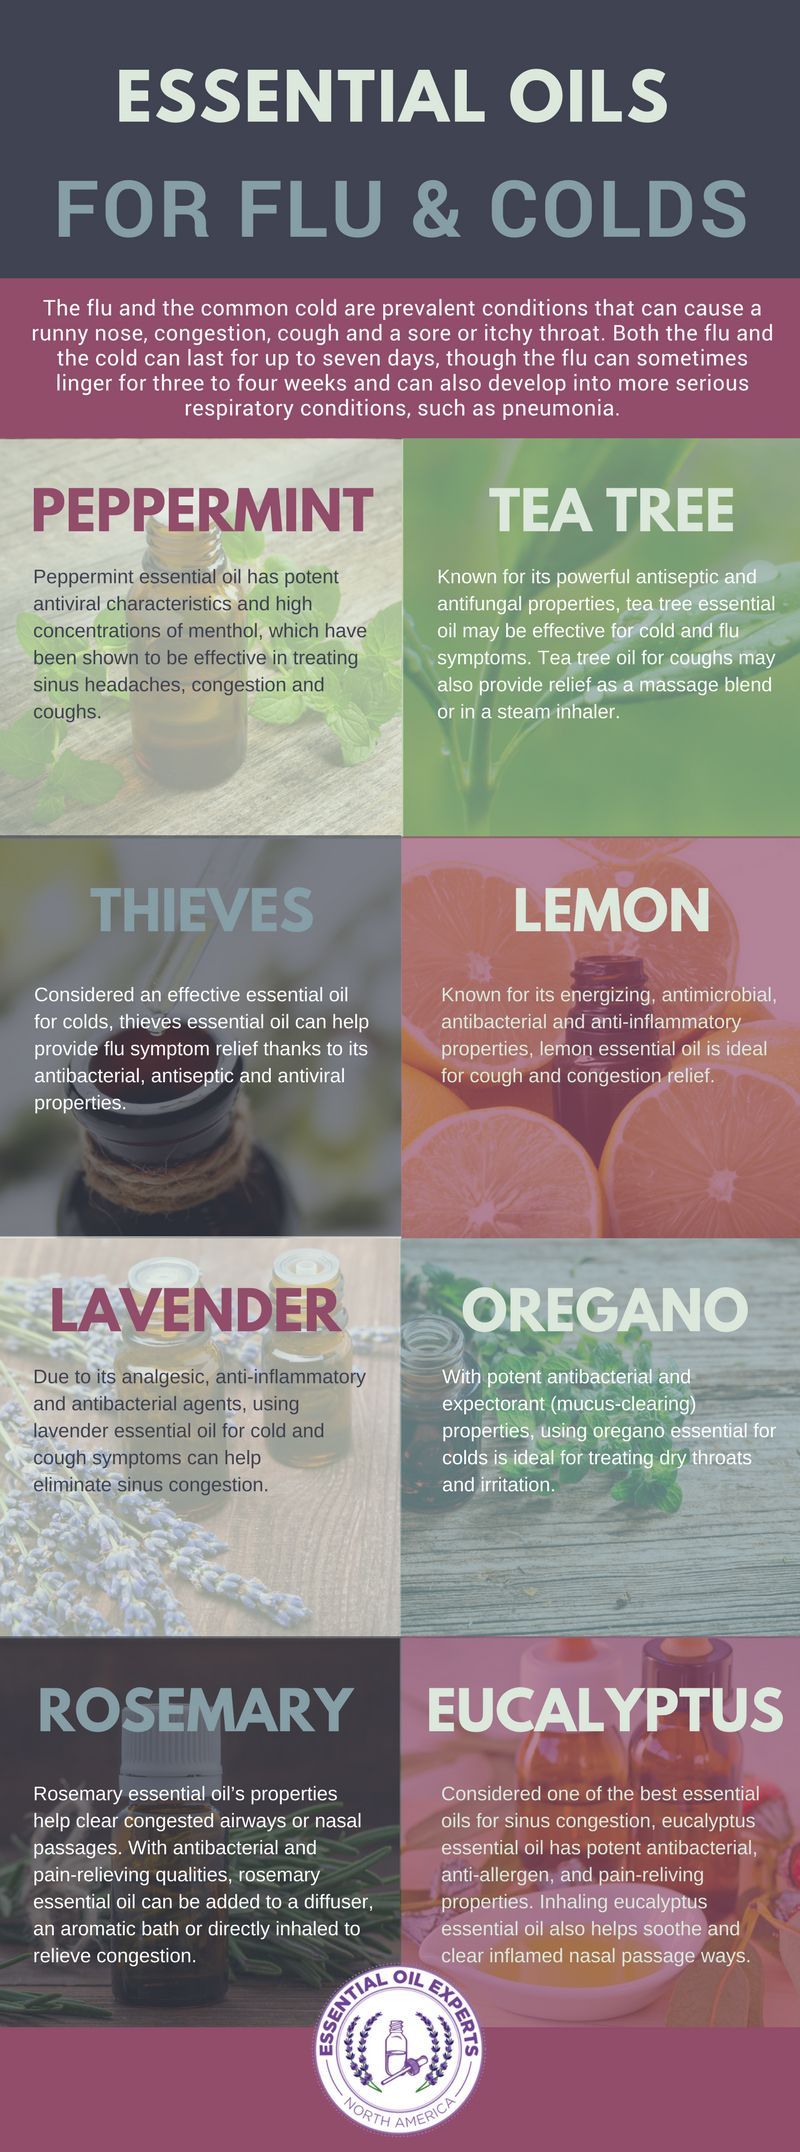 Pin On Healing With Essential Oils